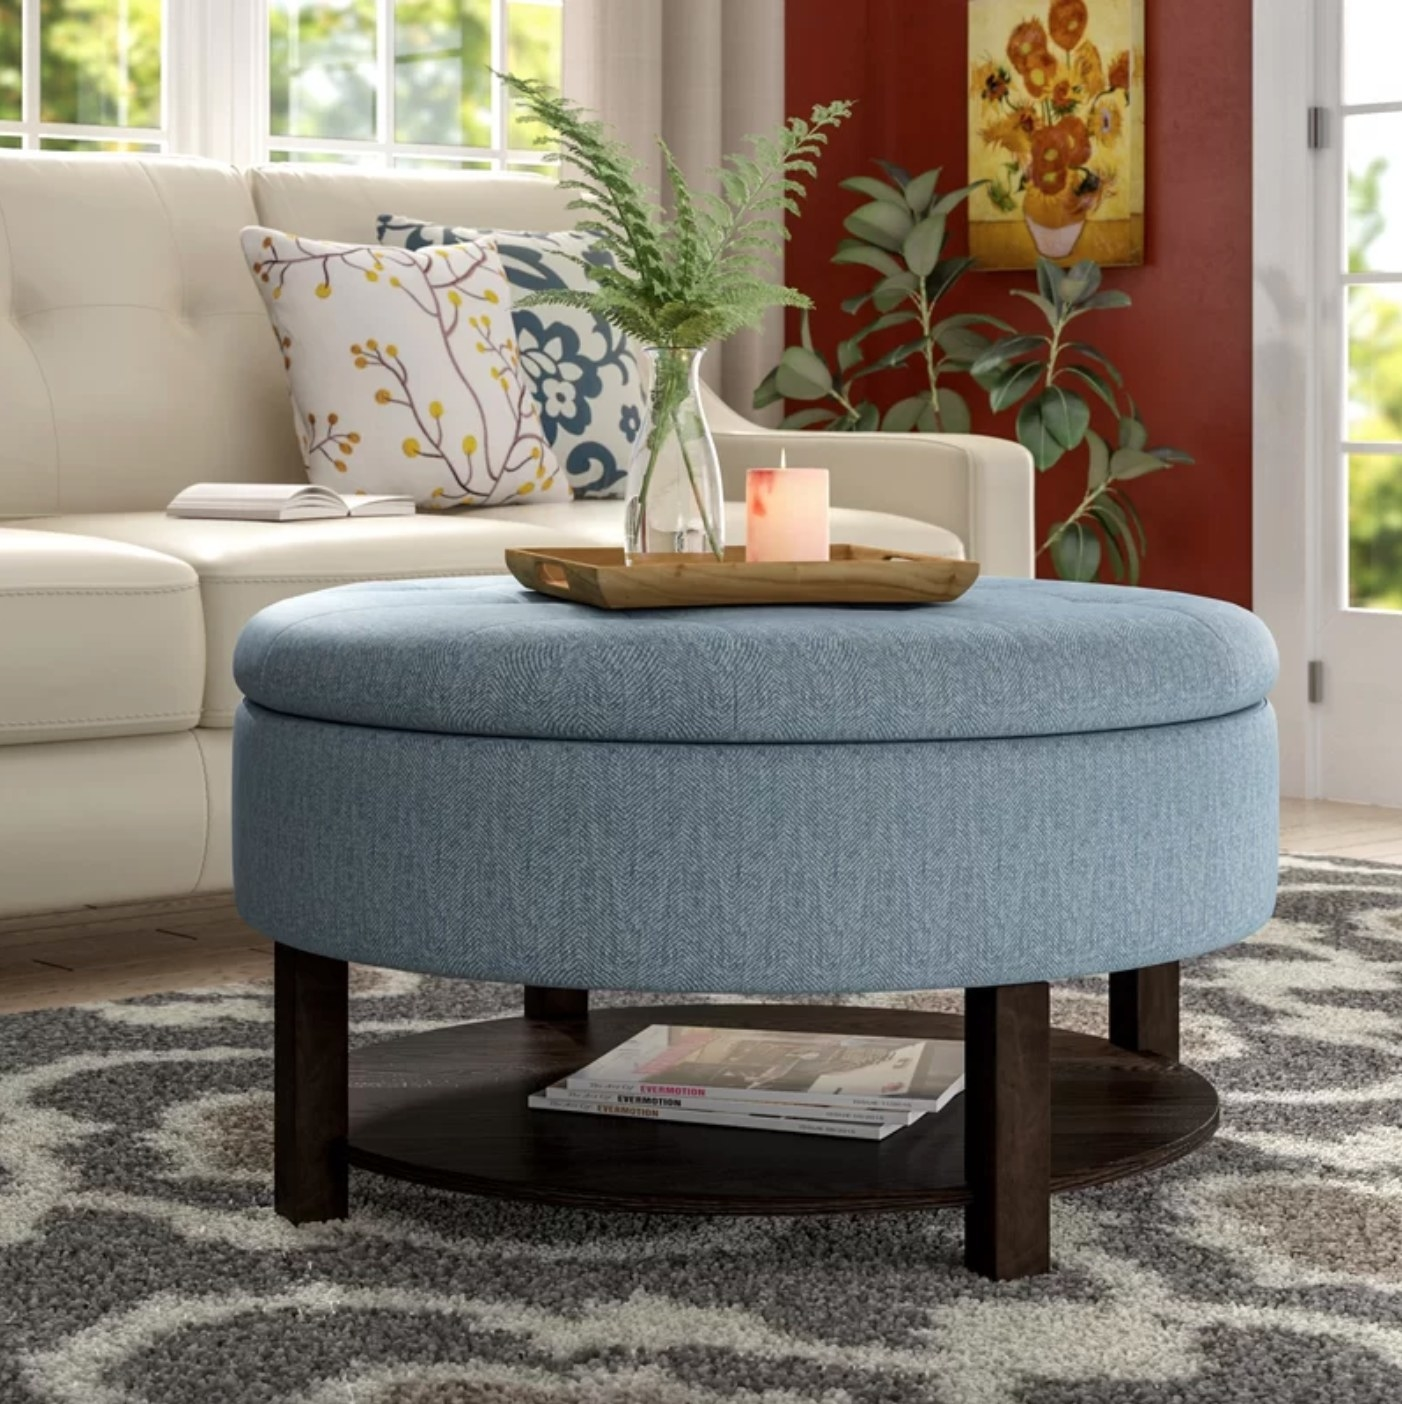 The round storage ottoman in blue with wood legs and an extra storage base with magazines